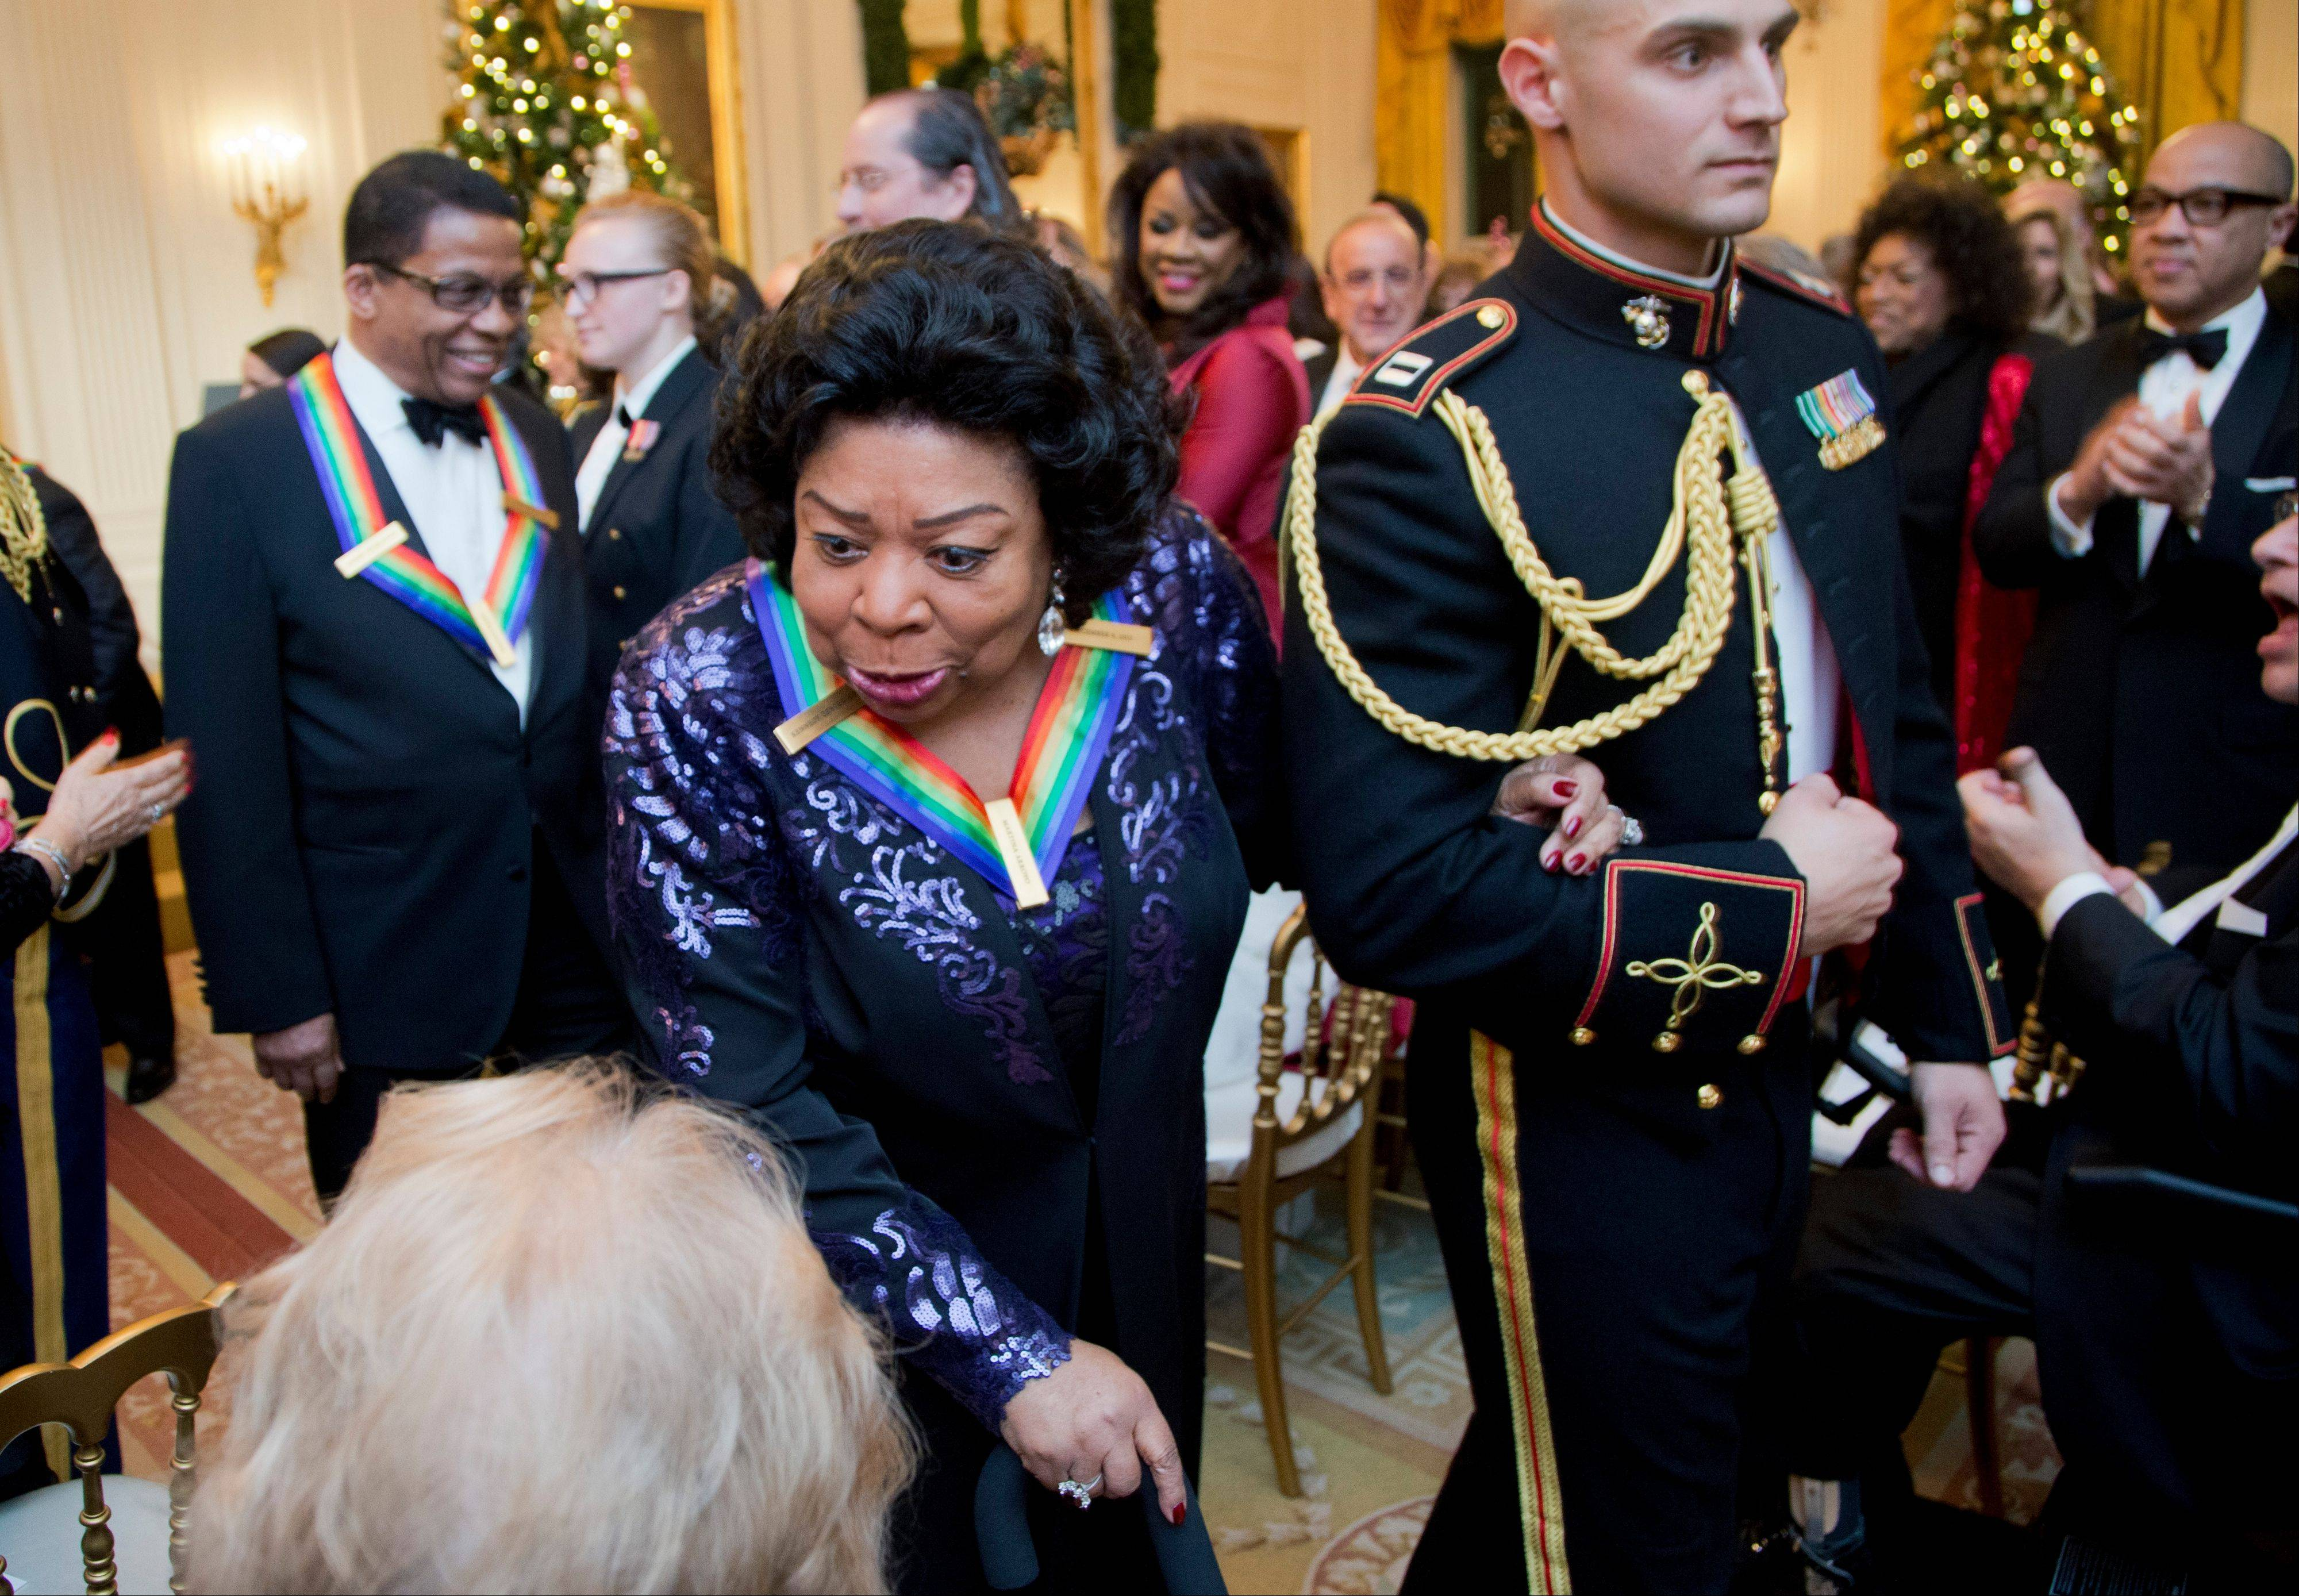 Recipient of the 2013 Kennedy Center Honors opera singer Martina Arroyo, left, leaves a reception Sunday honoring the 2013 Kennedy Center Honors honorees in the East Room of the White House in Washington.